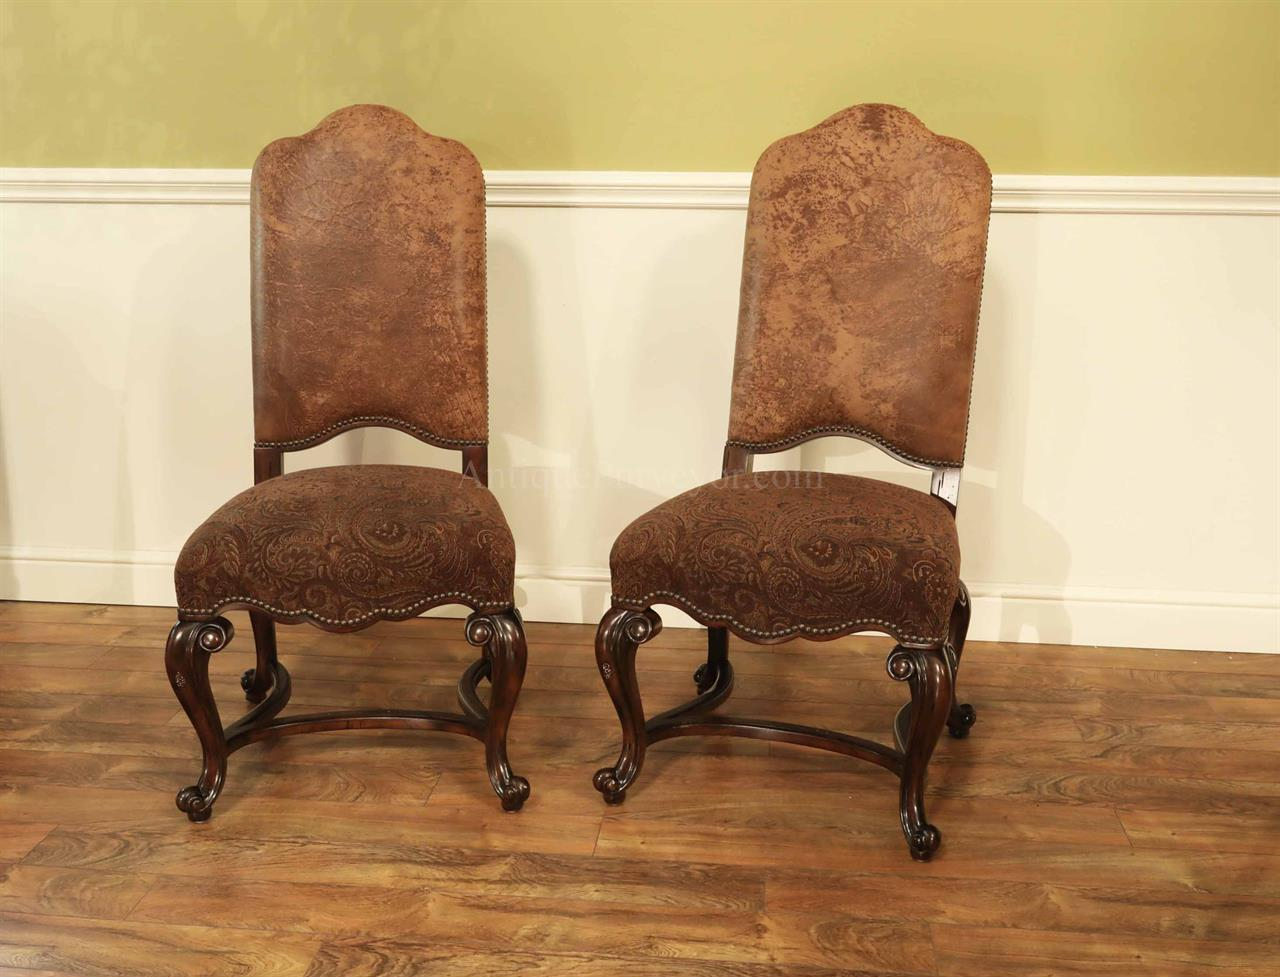 Leather and Paisley Upholstered Tuscan Style Dining Chairs